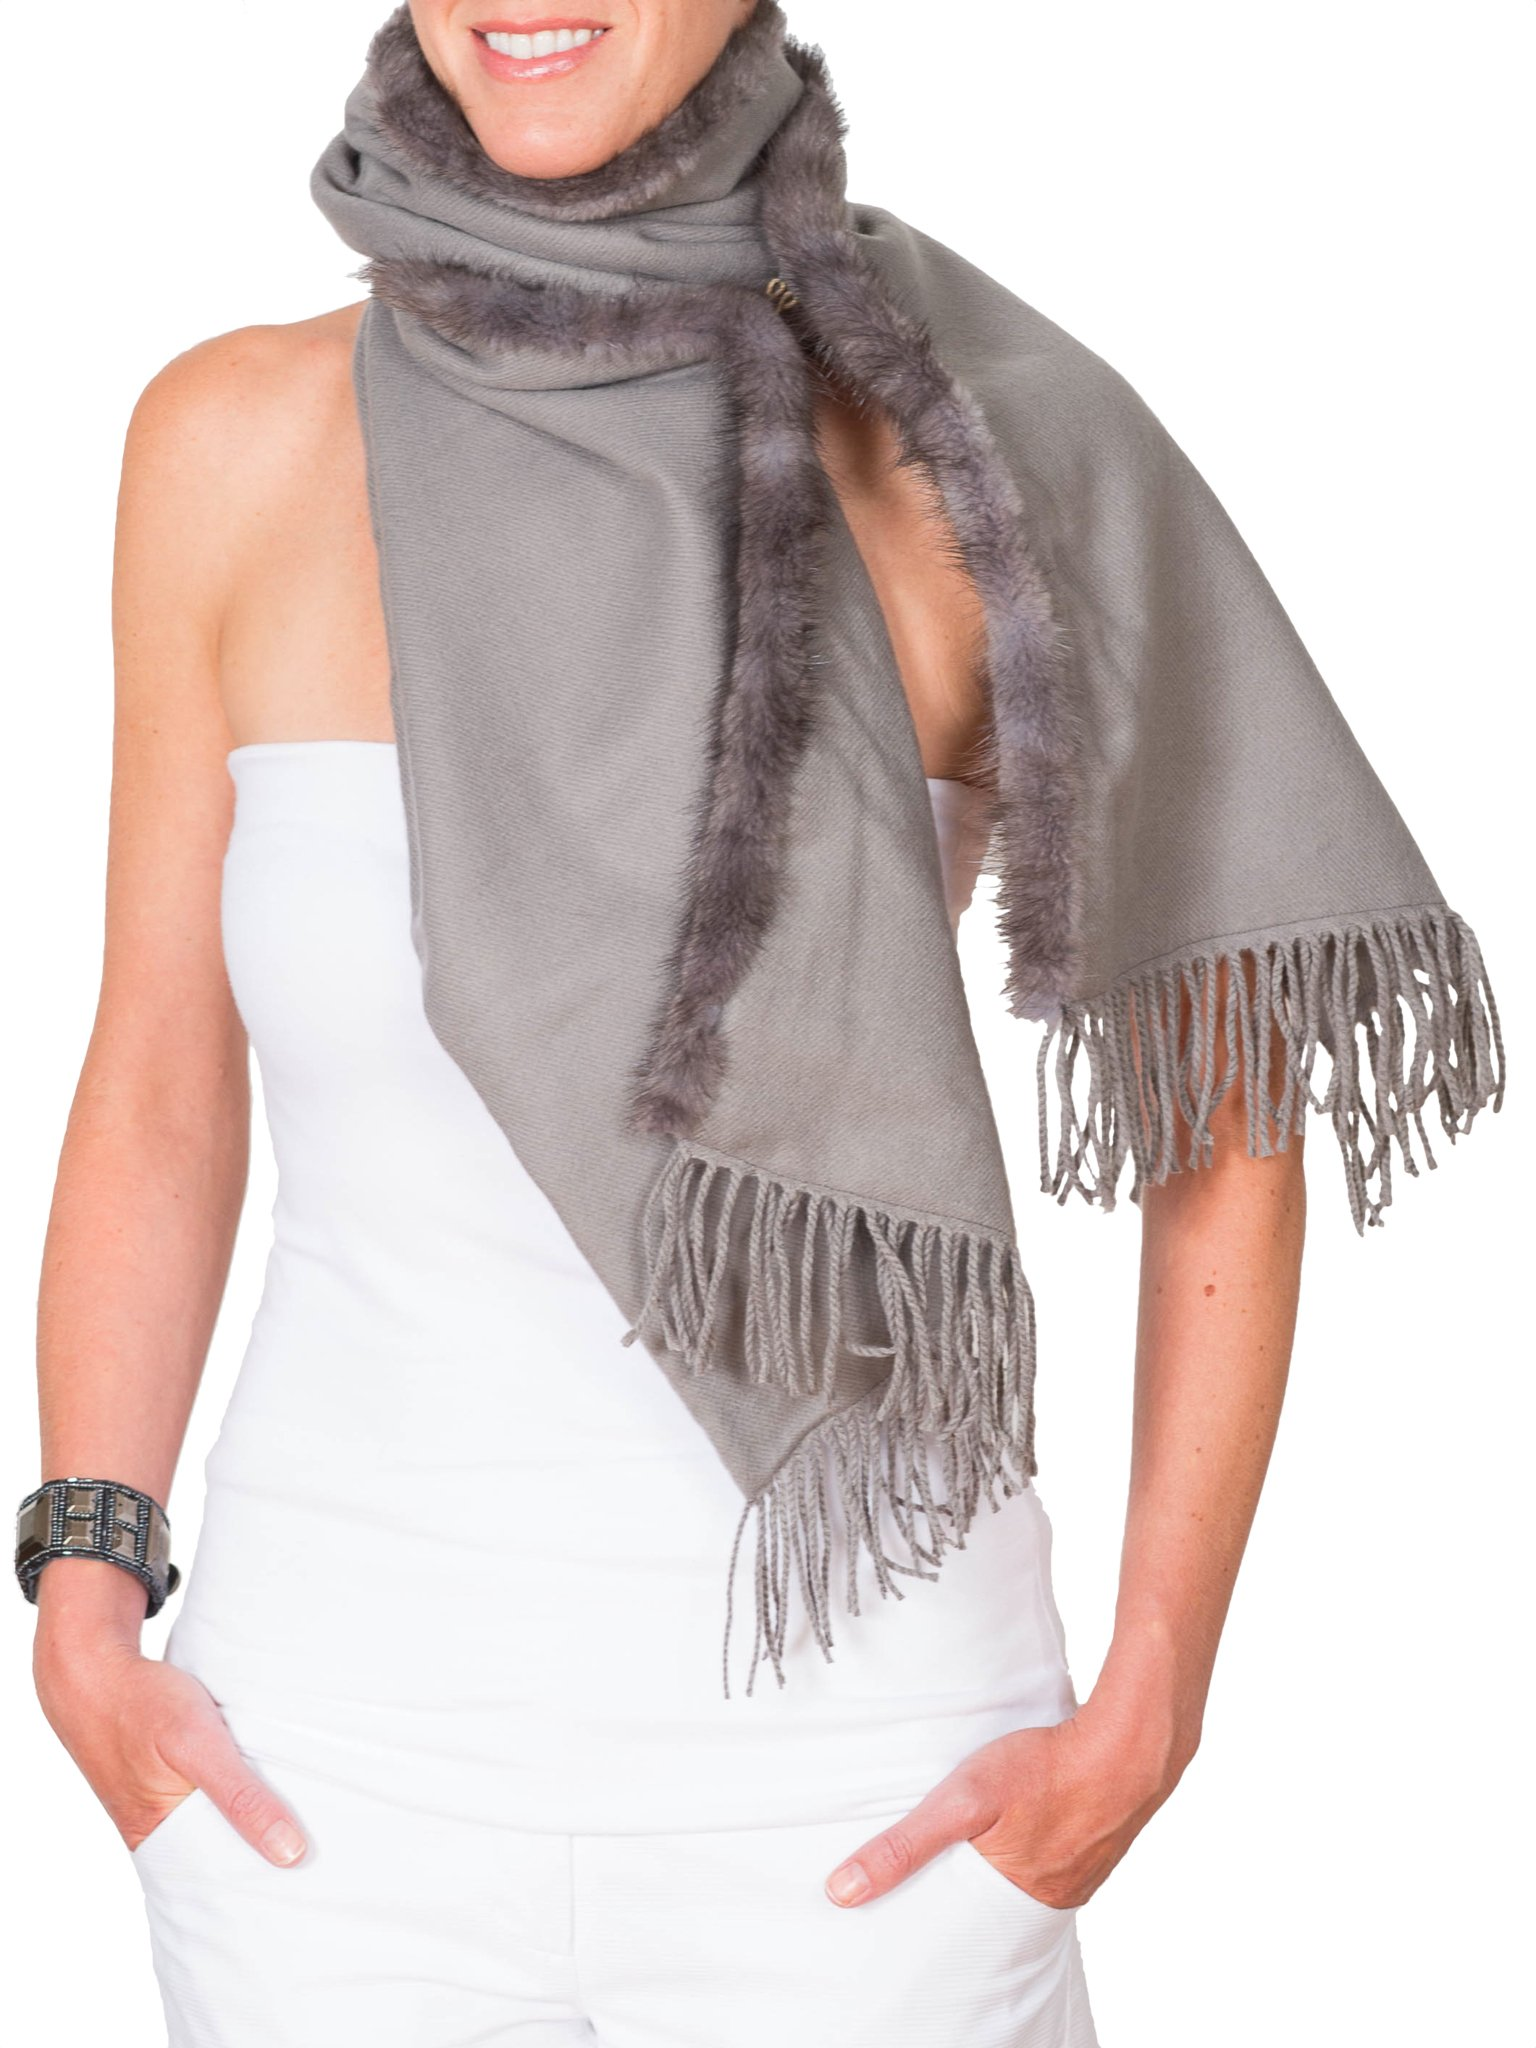 Claire Florence Women's Mink Cashmere Travel Scarf 12''X24'' Grey